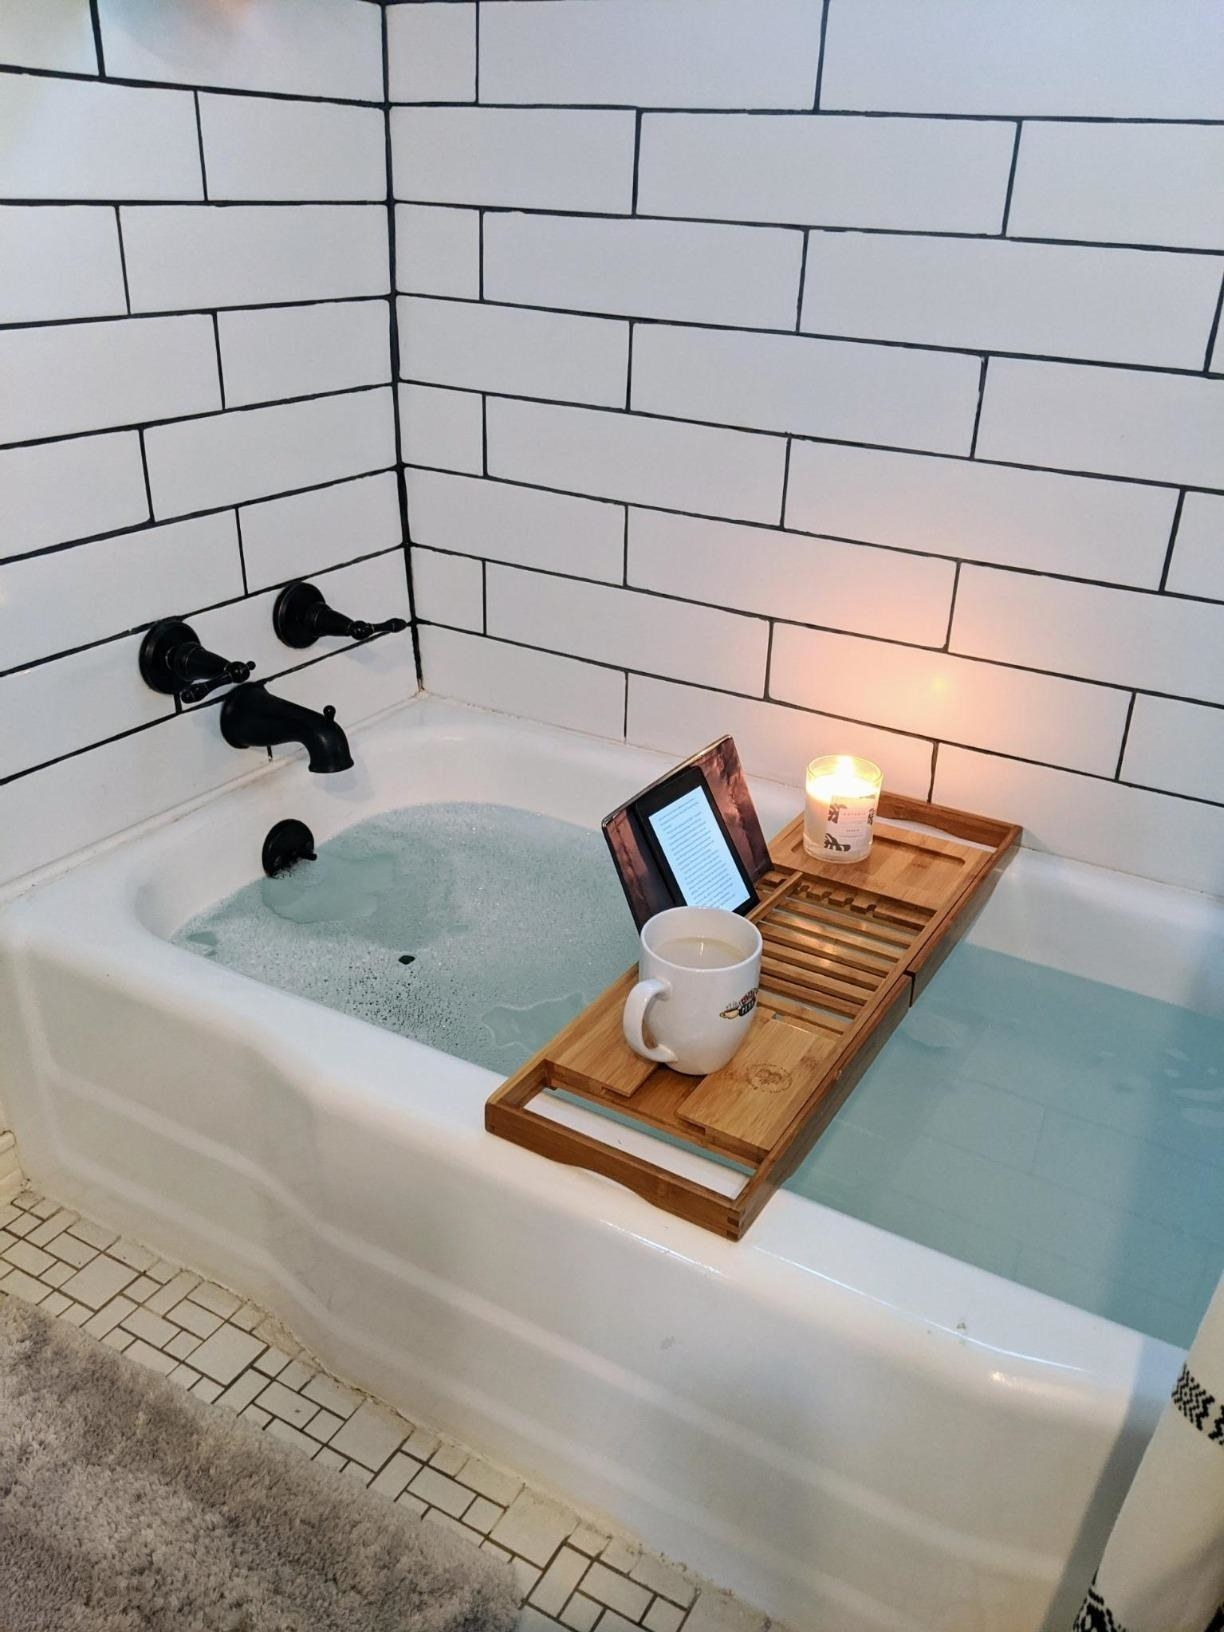 The caddy with a coffee mug, candle, and Kindle on it over a bathtub